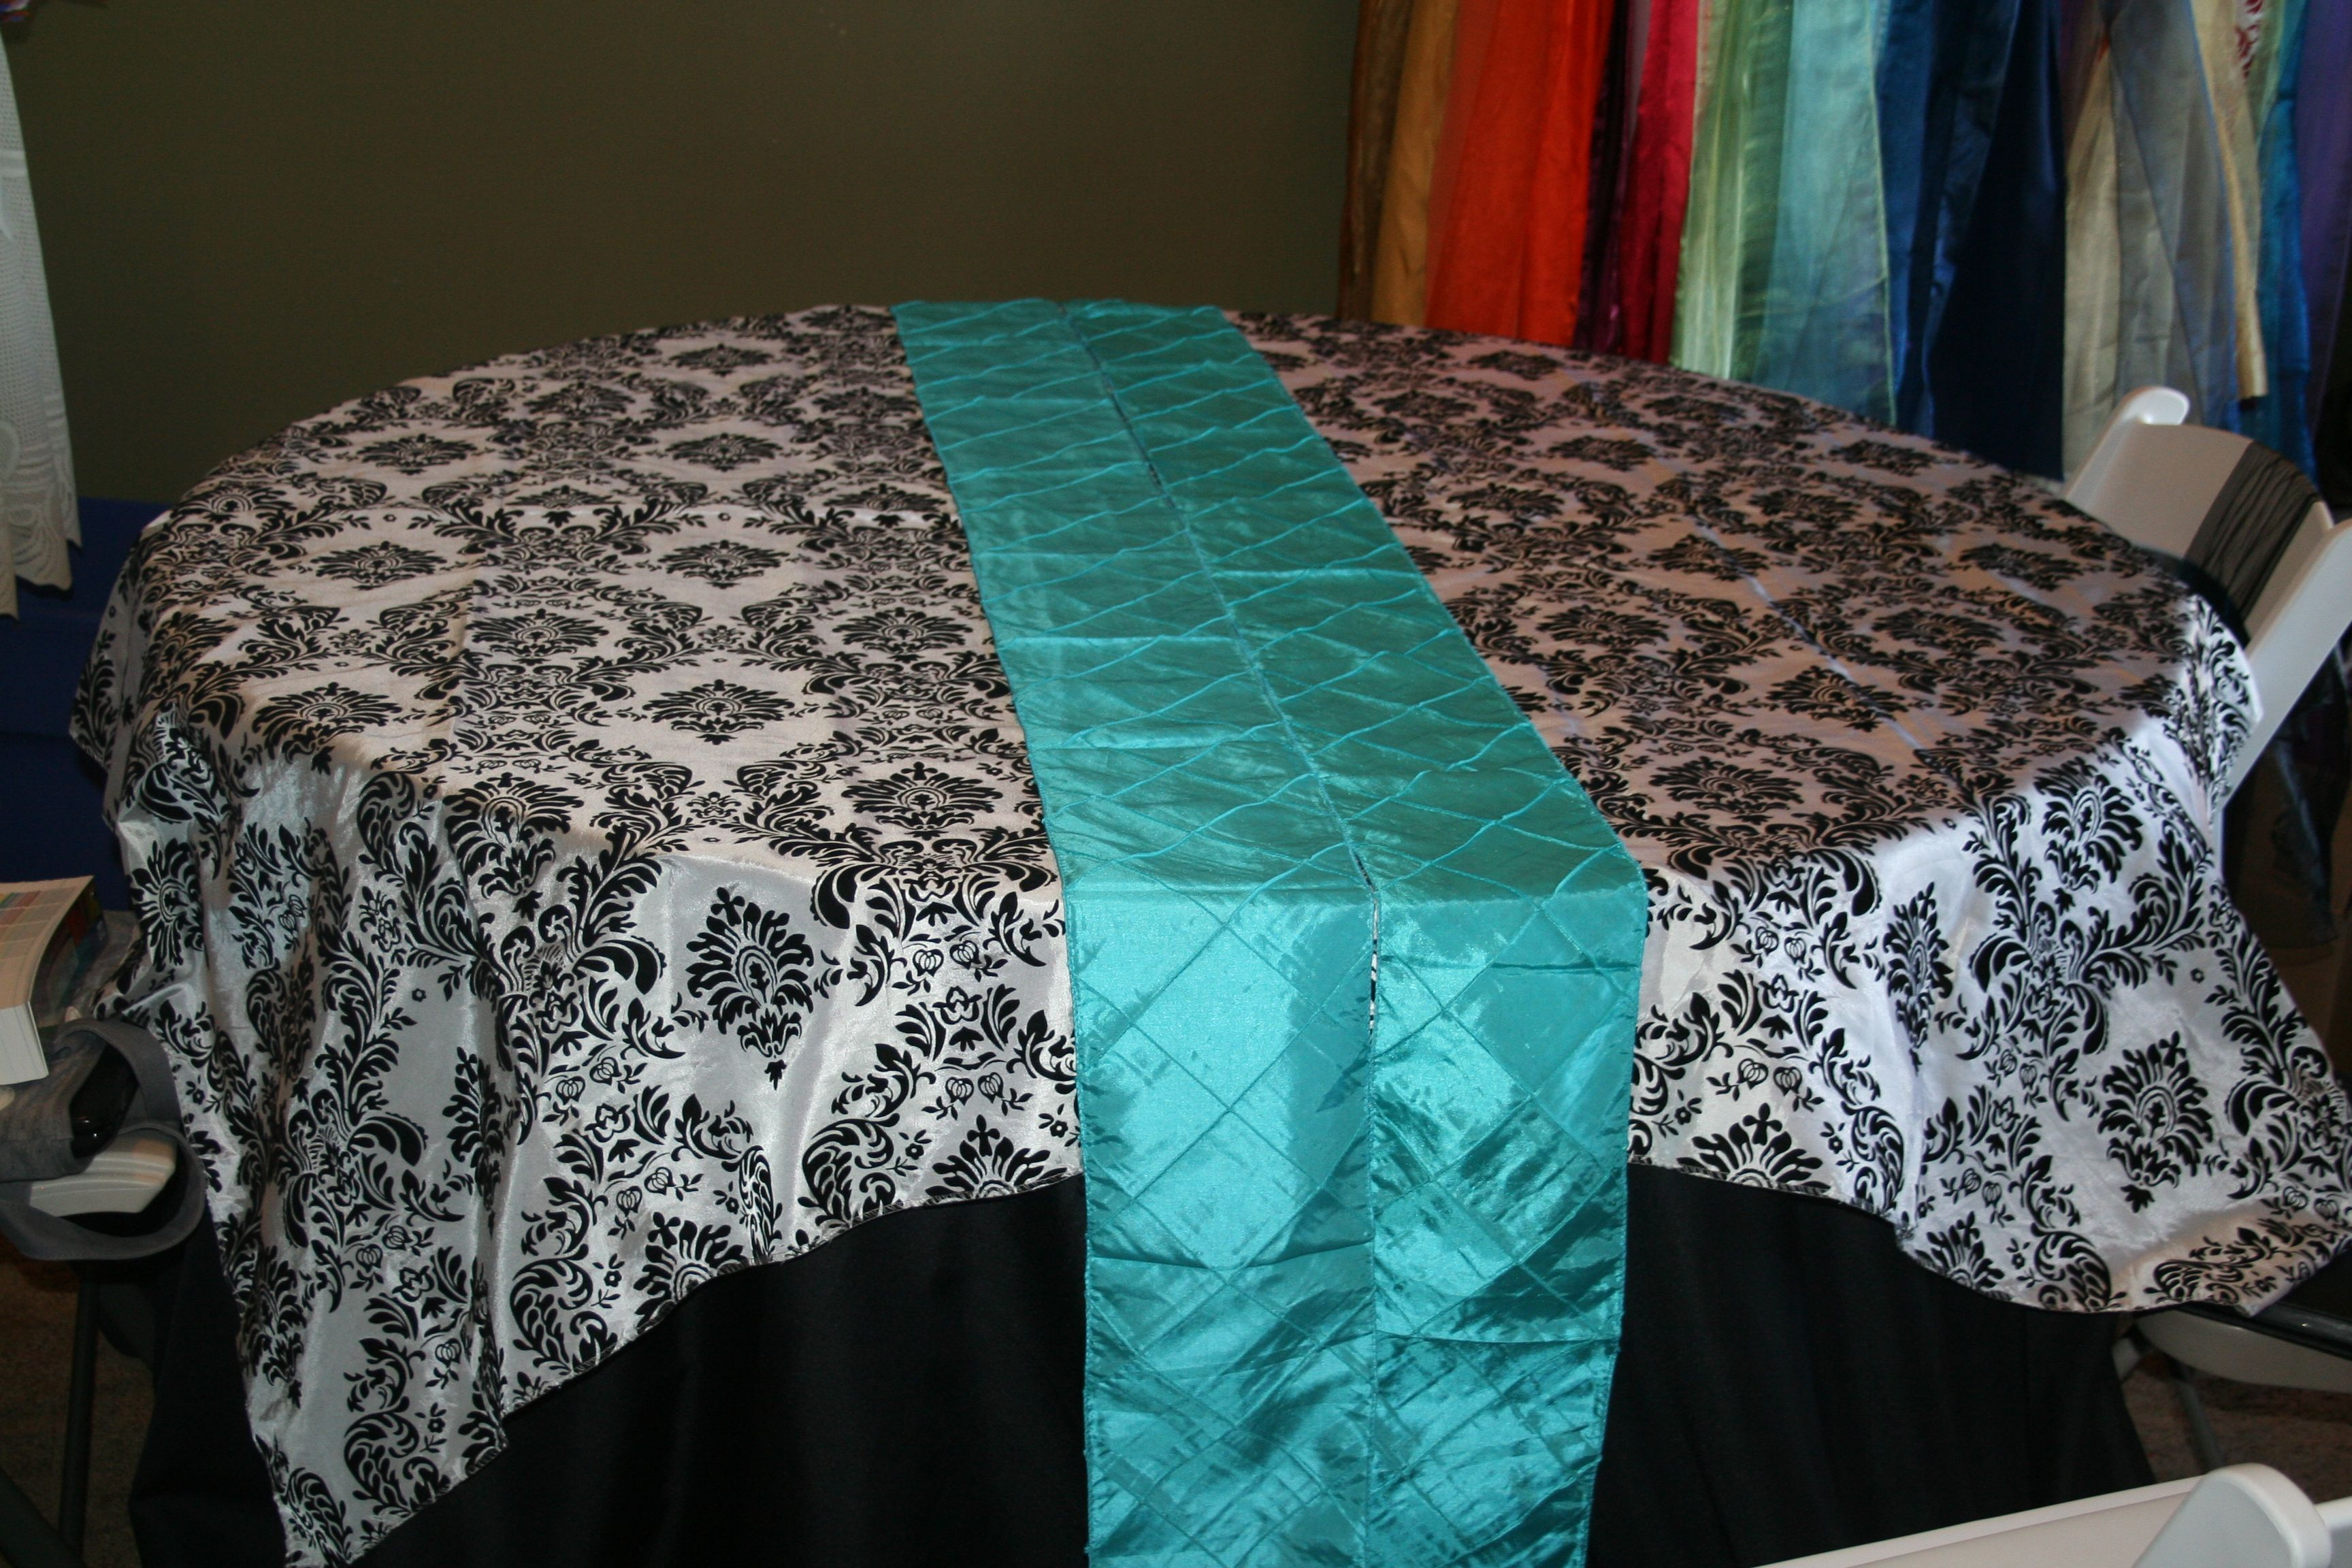 Basic Black Tablecloth With Black And White Flocked Damask Overlay,